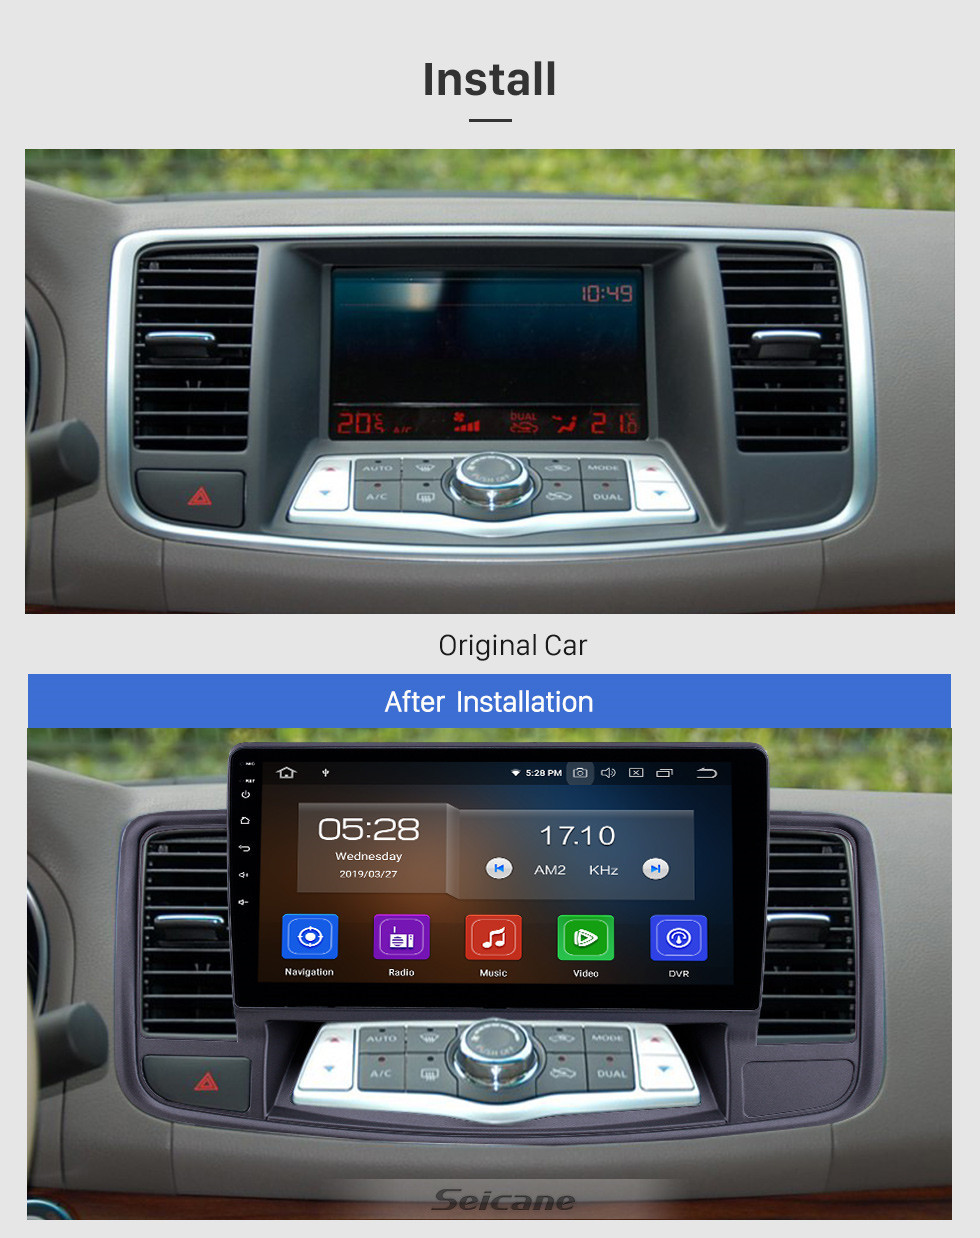 Seicane 10.1 inch Android 10.0 Radio for 2009-2013 Nissan Old Teana Bluetooth HD Touchscreen GPS Navigation Carplay USB support TPMS DAB+